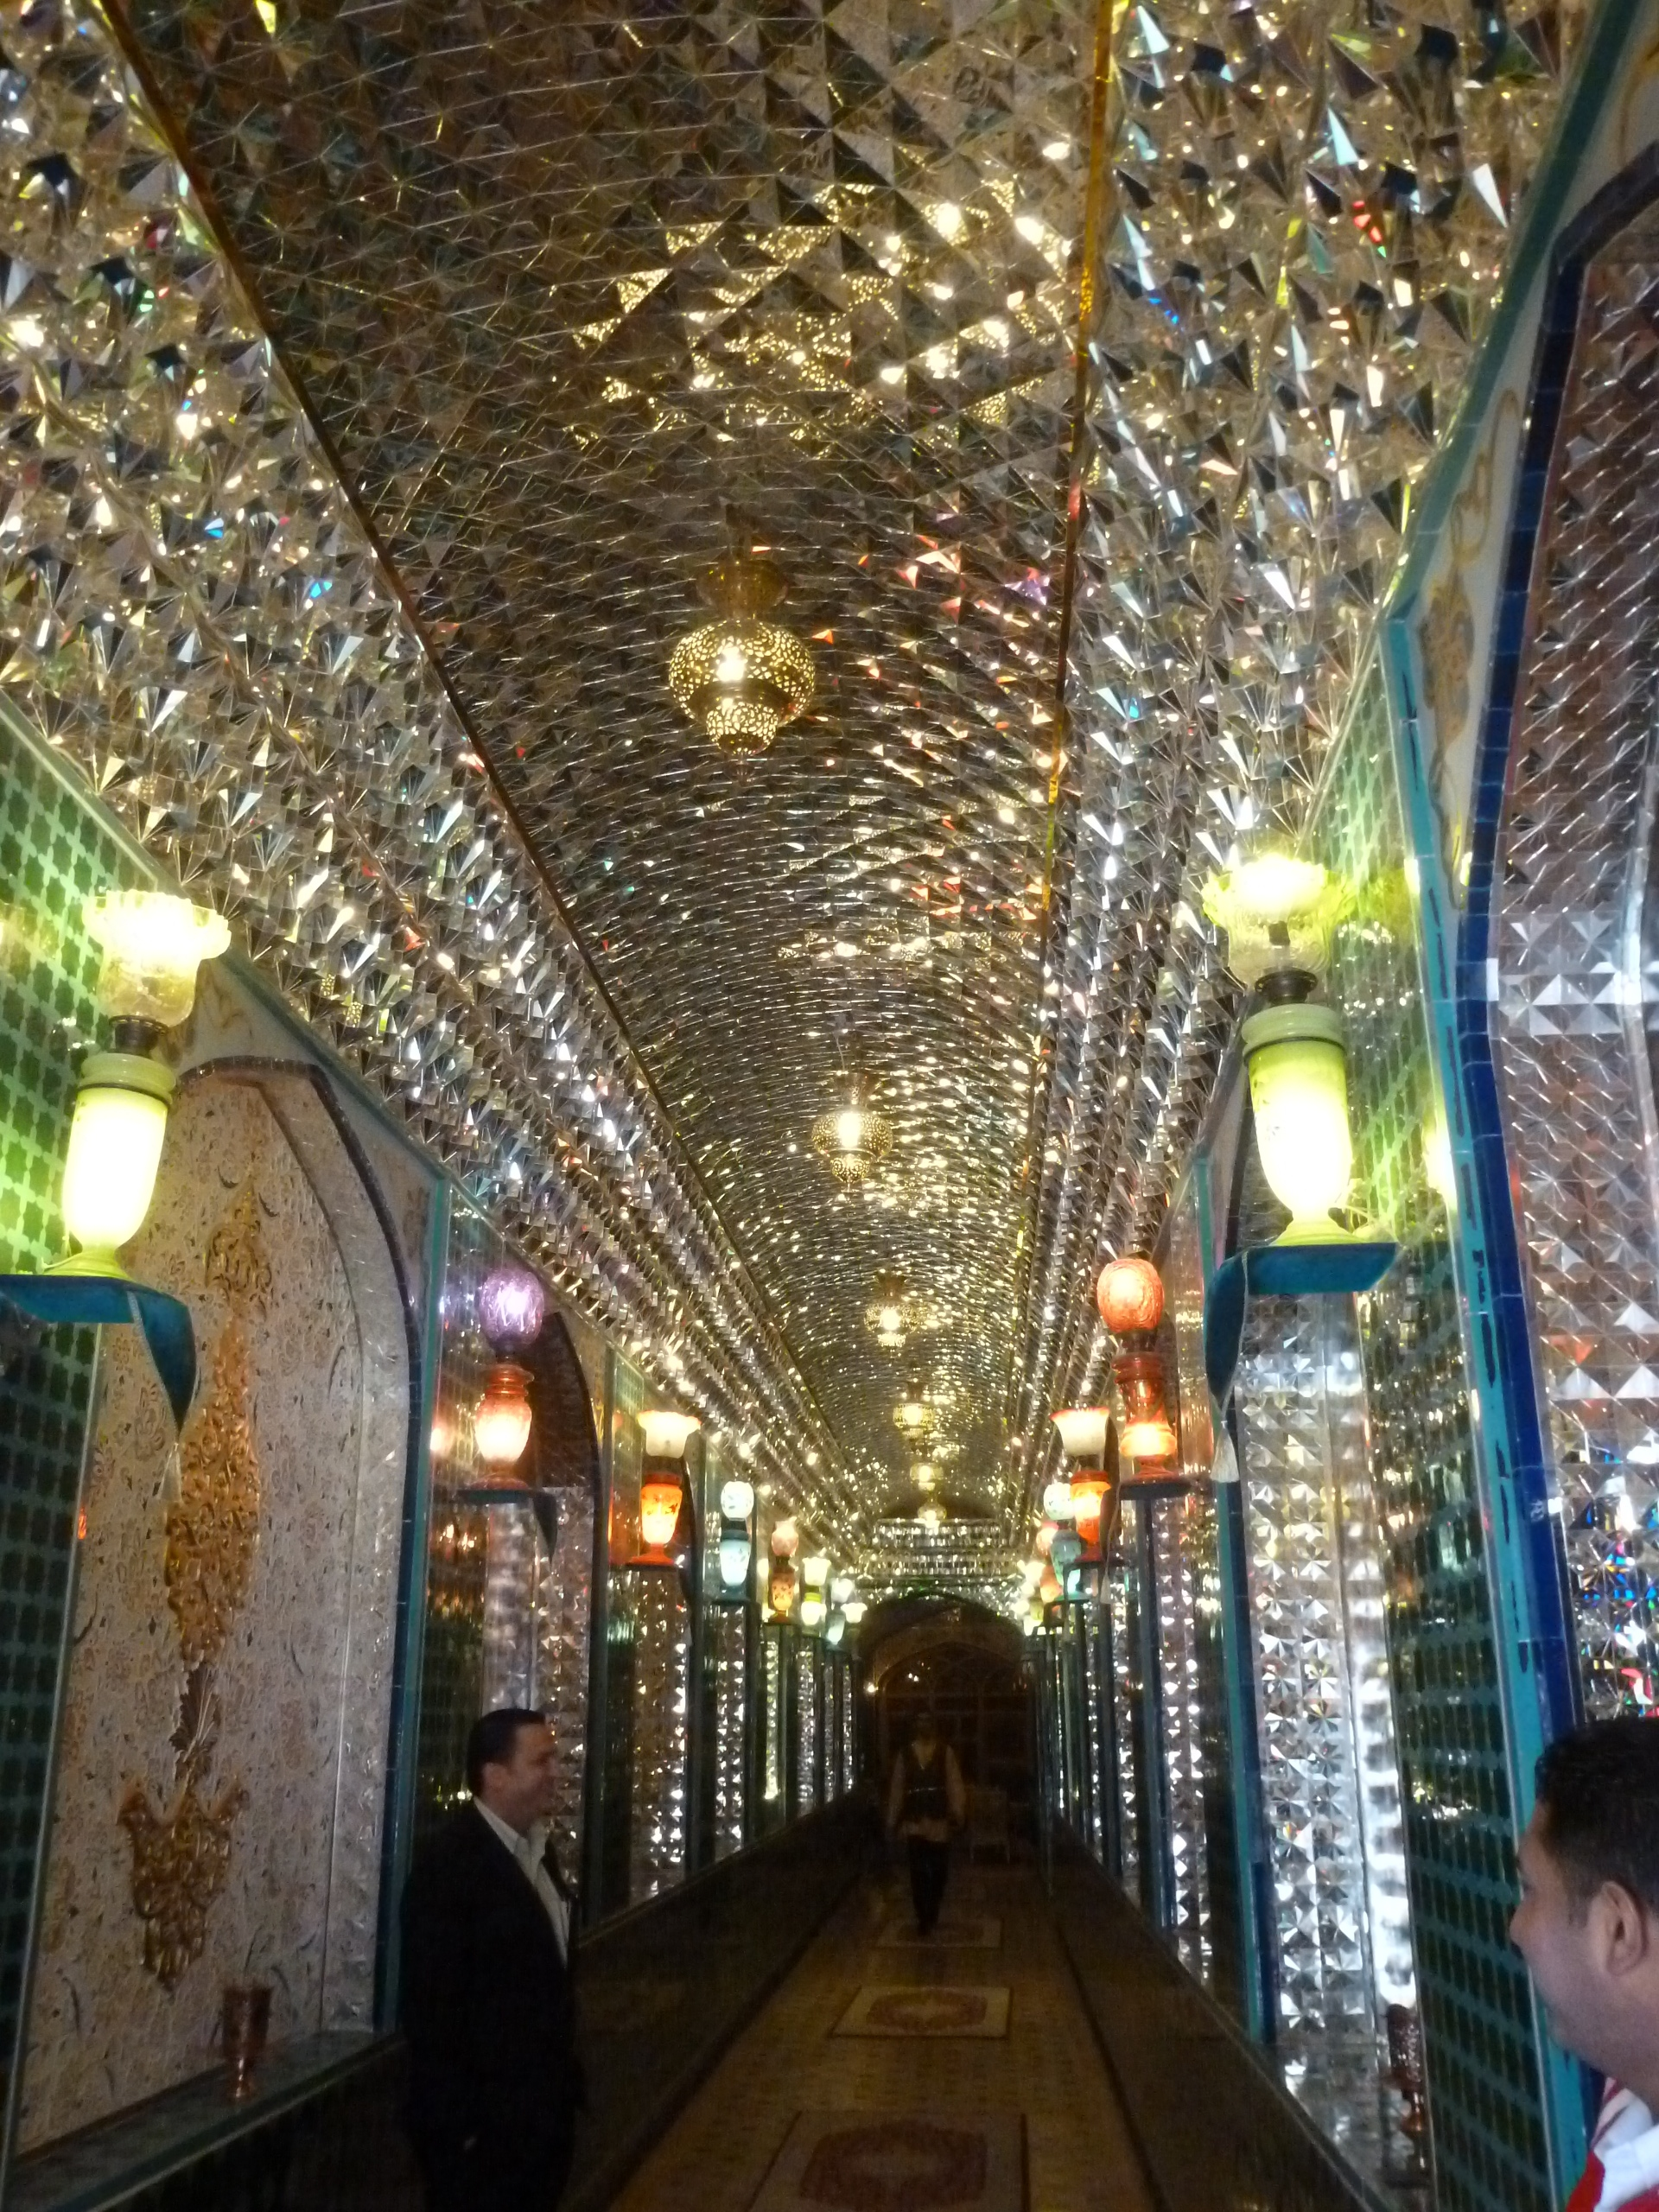 Turkish restaurant  in Souq Waqif, Doha, Qatar